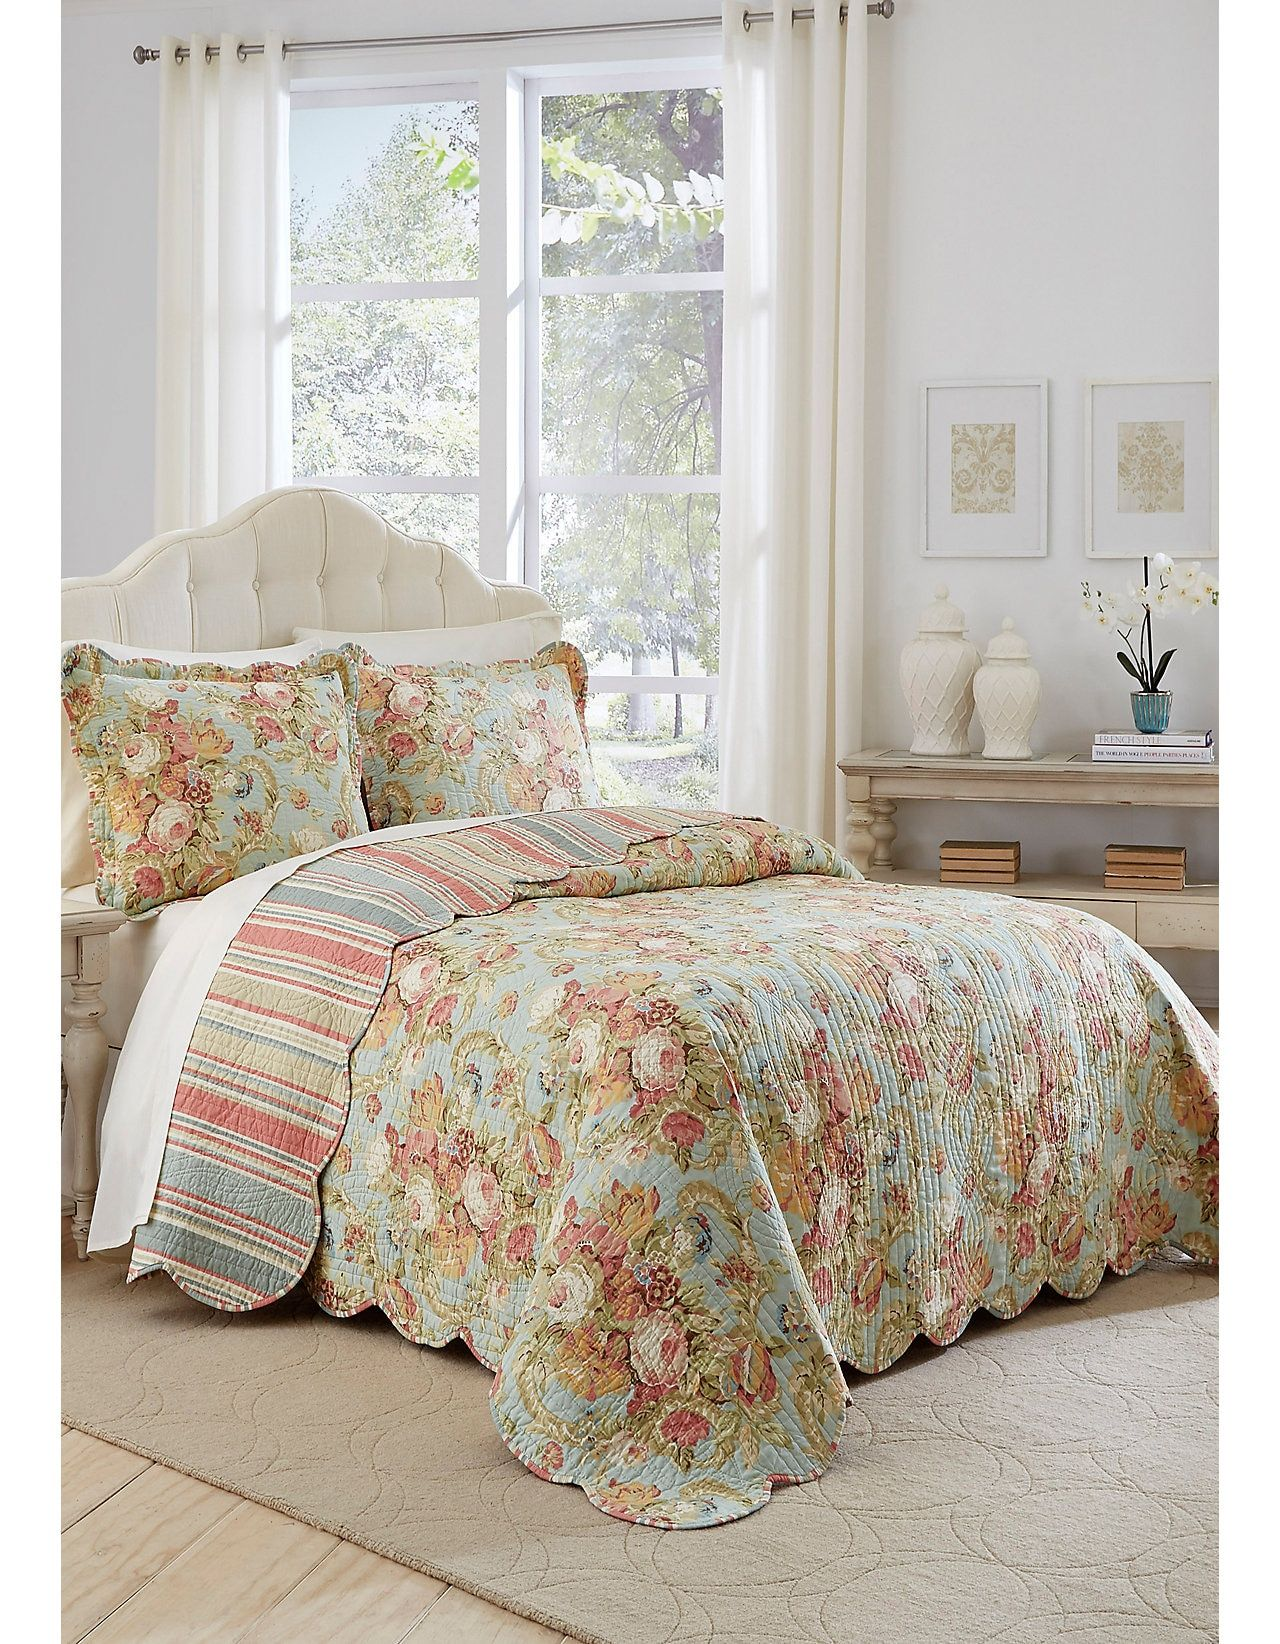 Waverly Spring Bling King 3 Piece Bedspread Set Bed Spreads